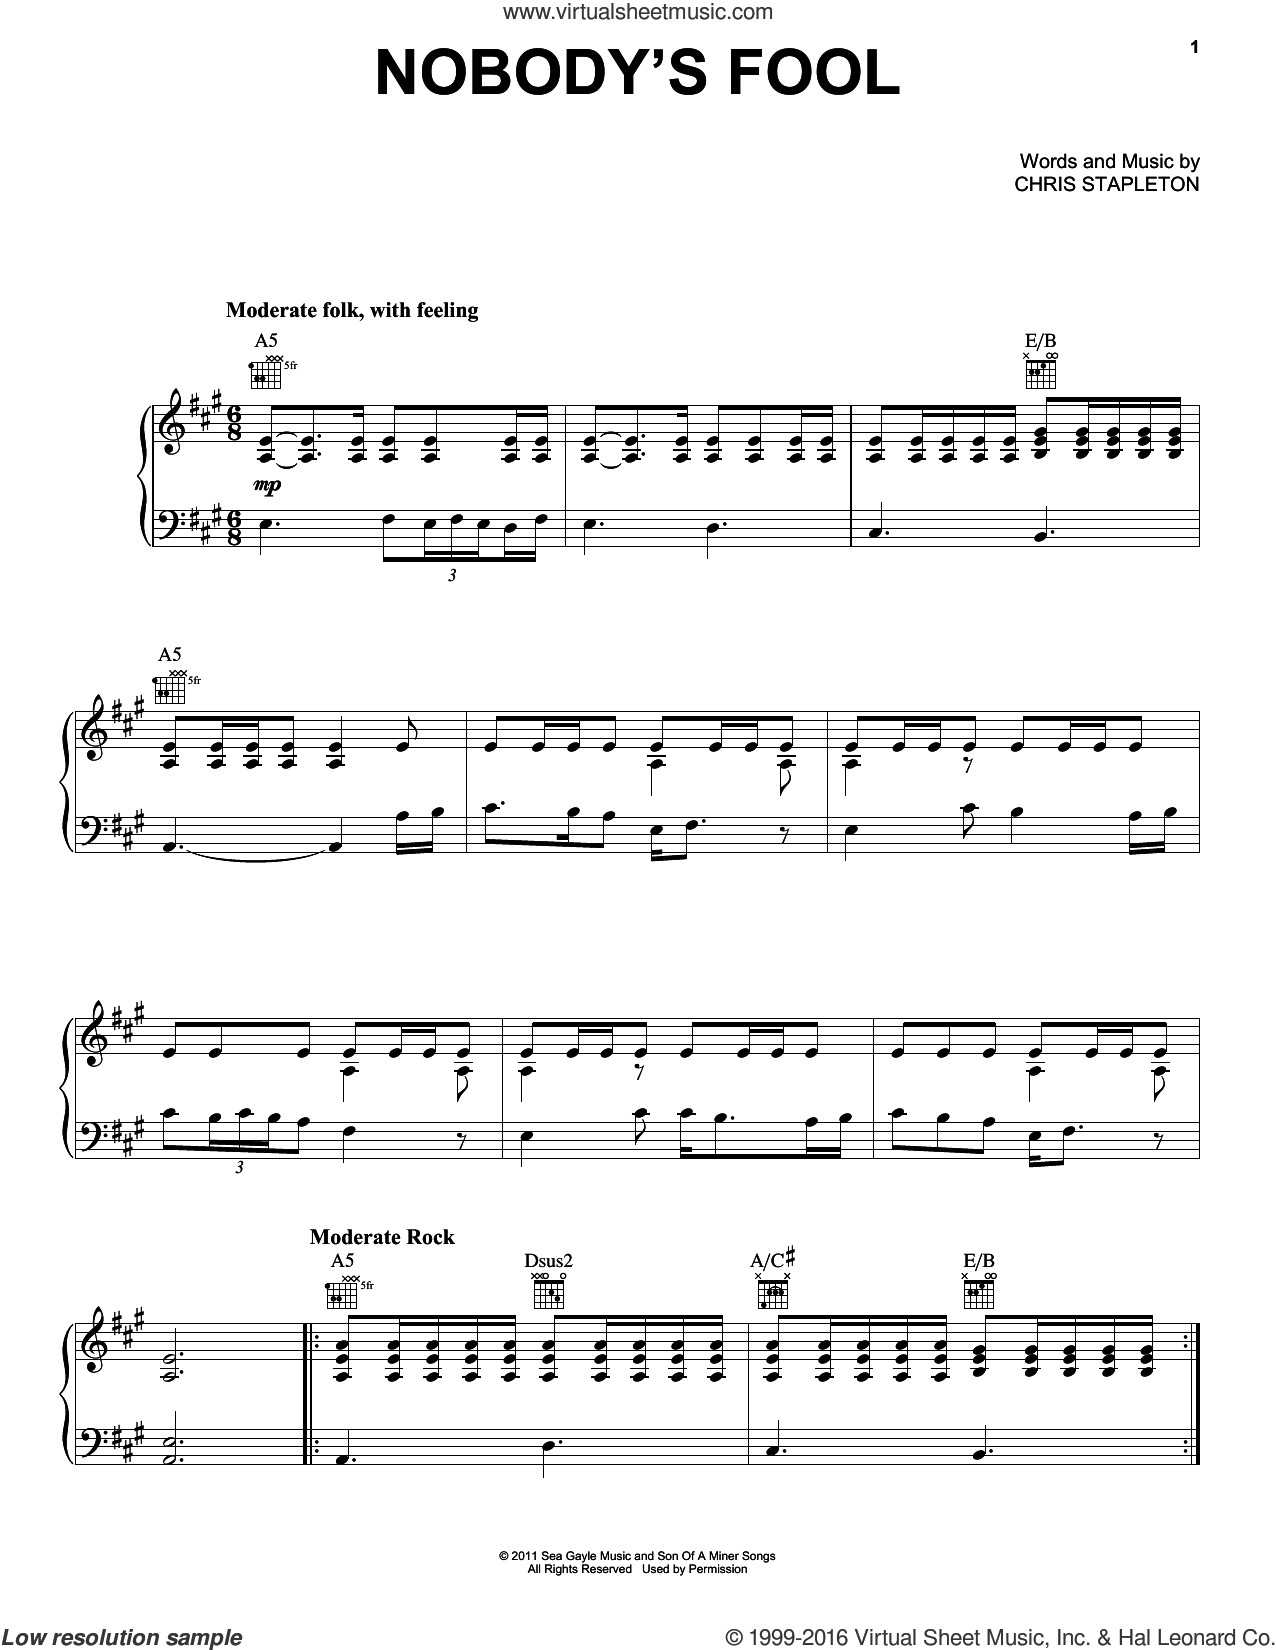 Nobody's Fool sheet music for voice, piano or guitar by Miranda Lambert and Chris Stapleton, intermediate